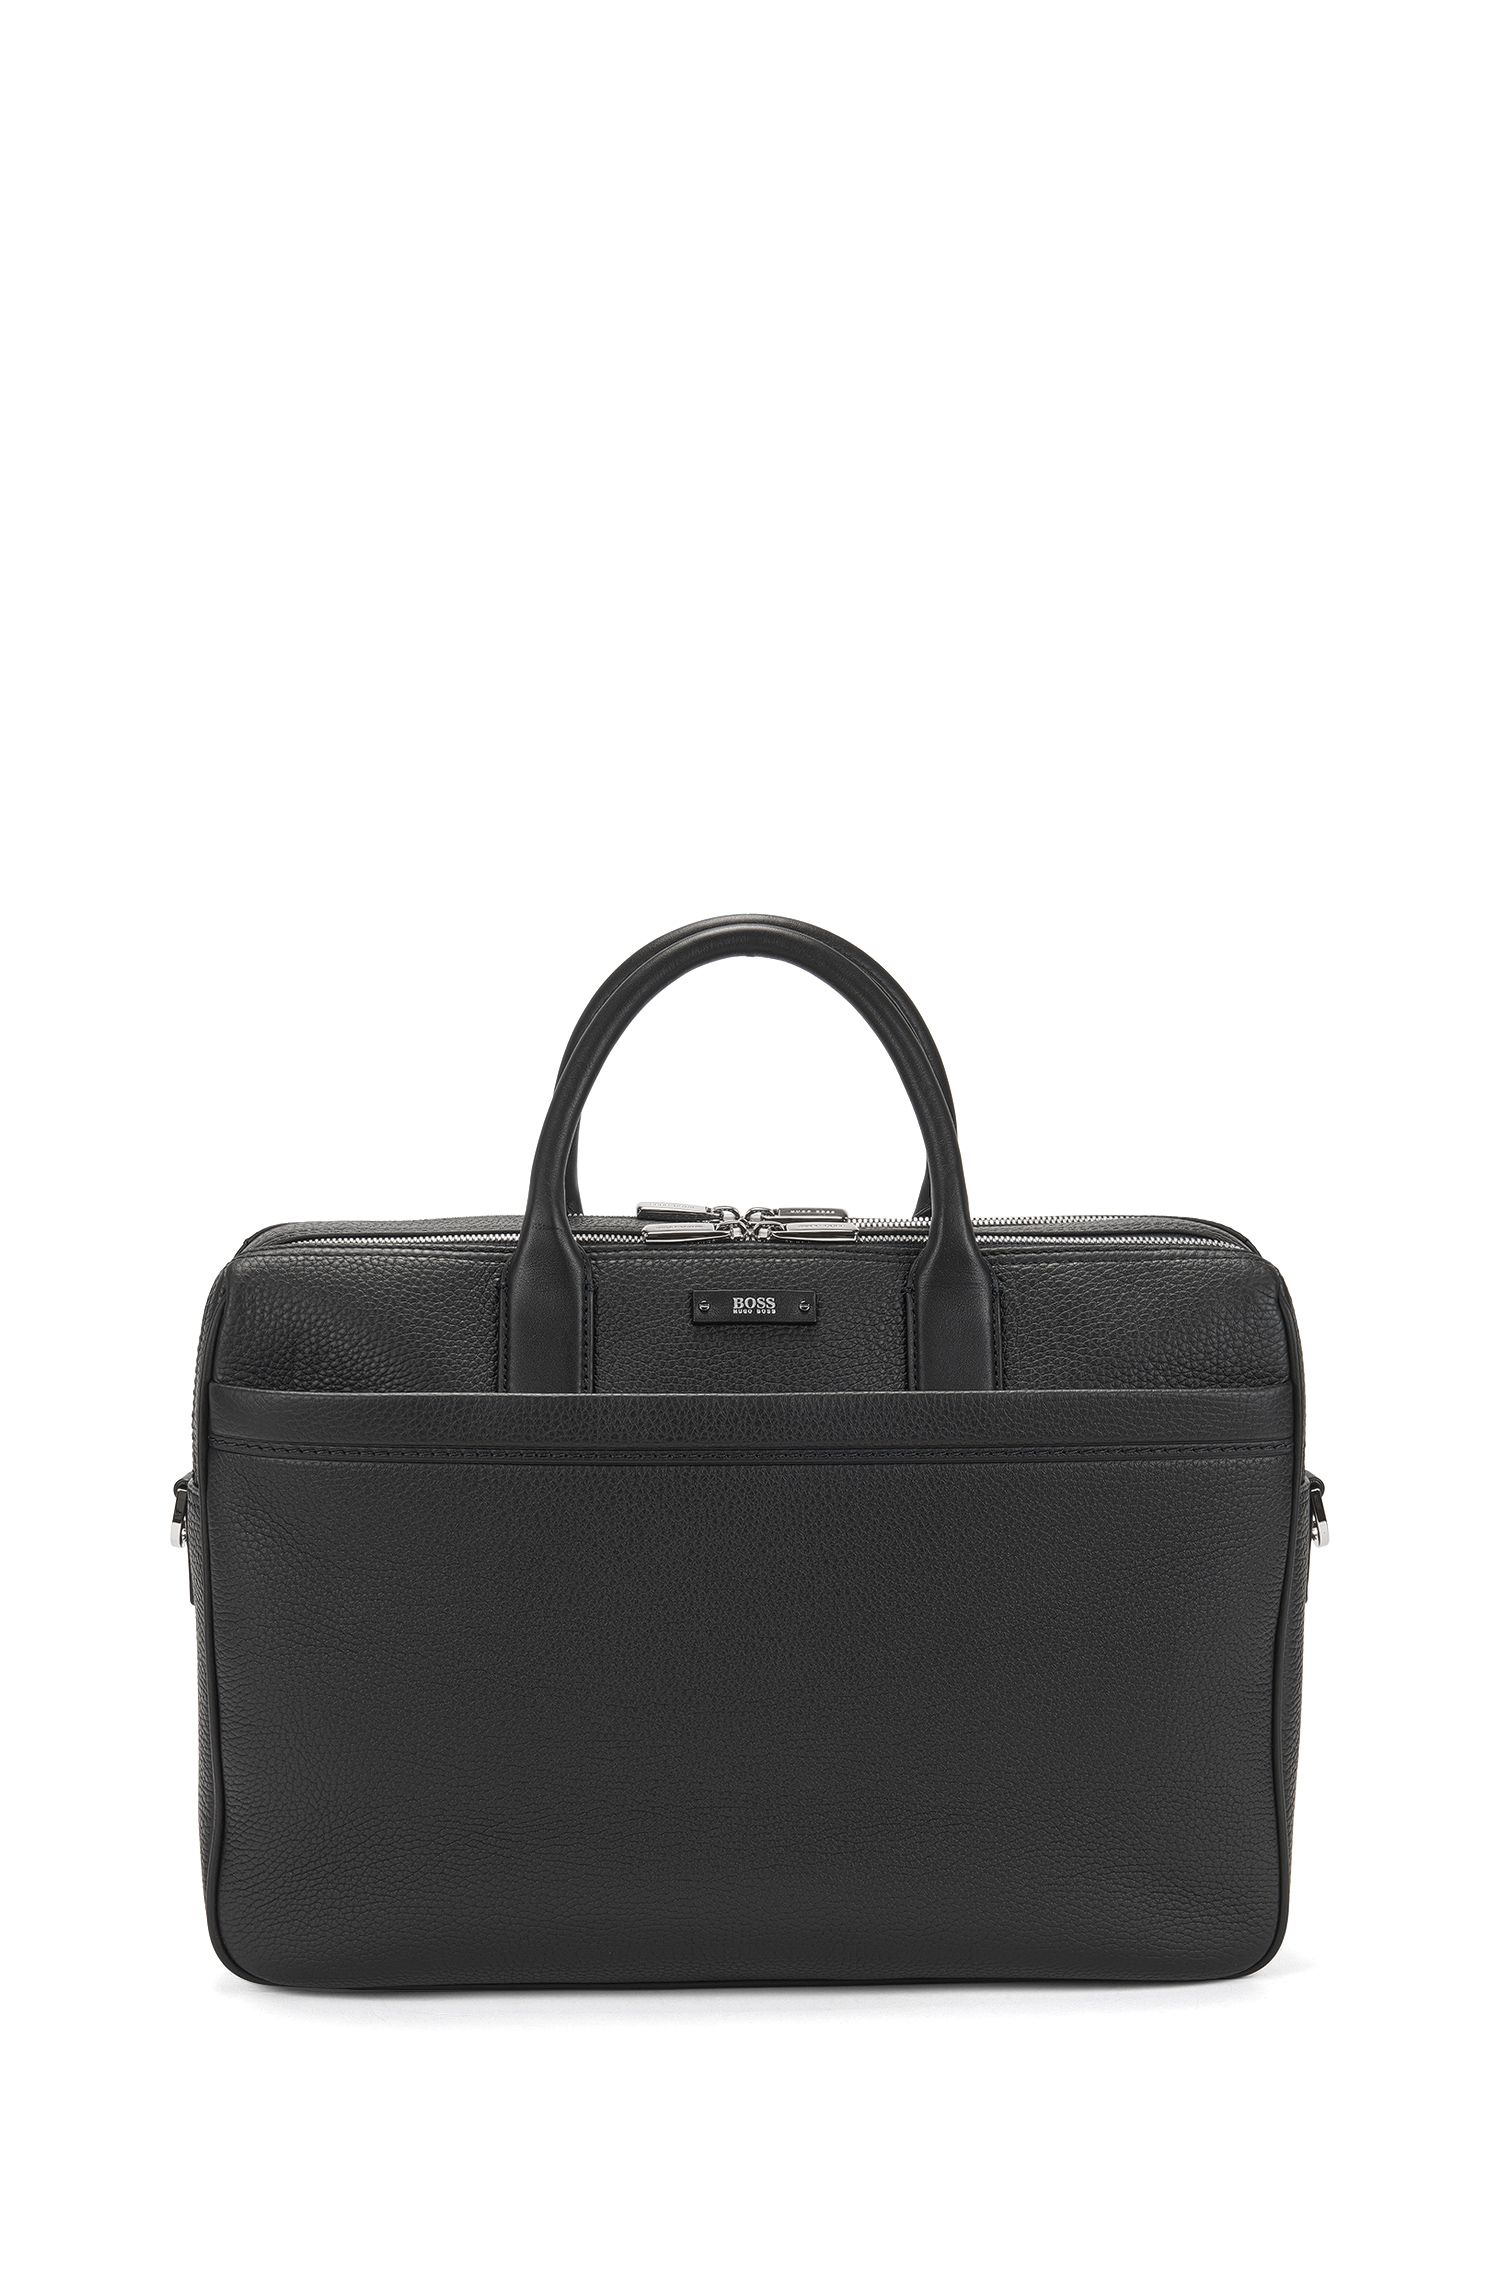 Leather Work Bag | Traveller D Doc, Black